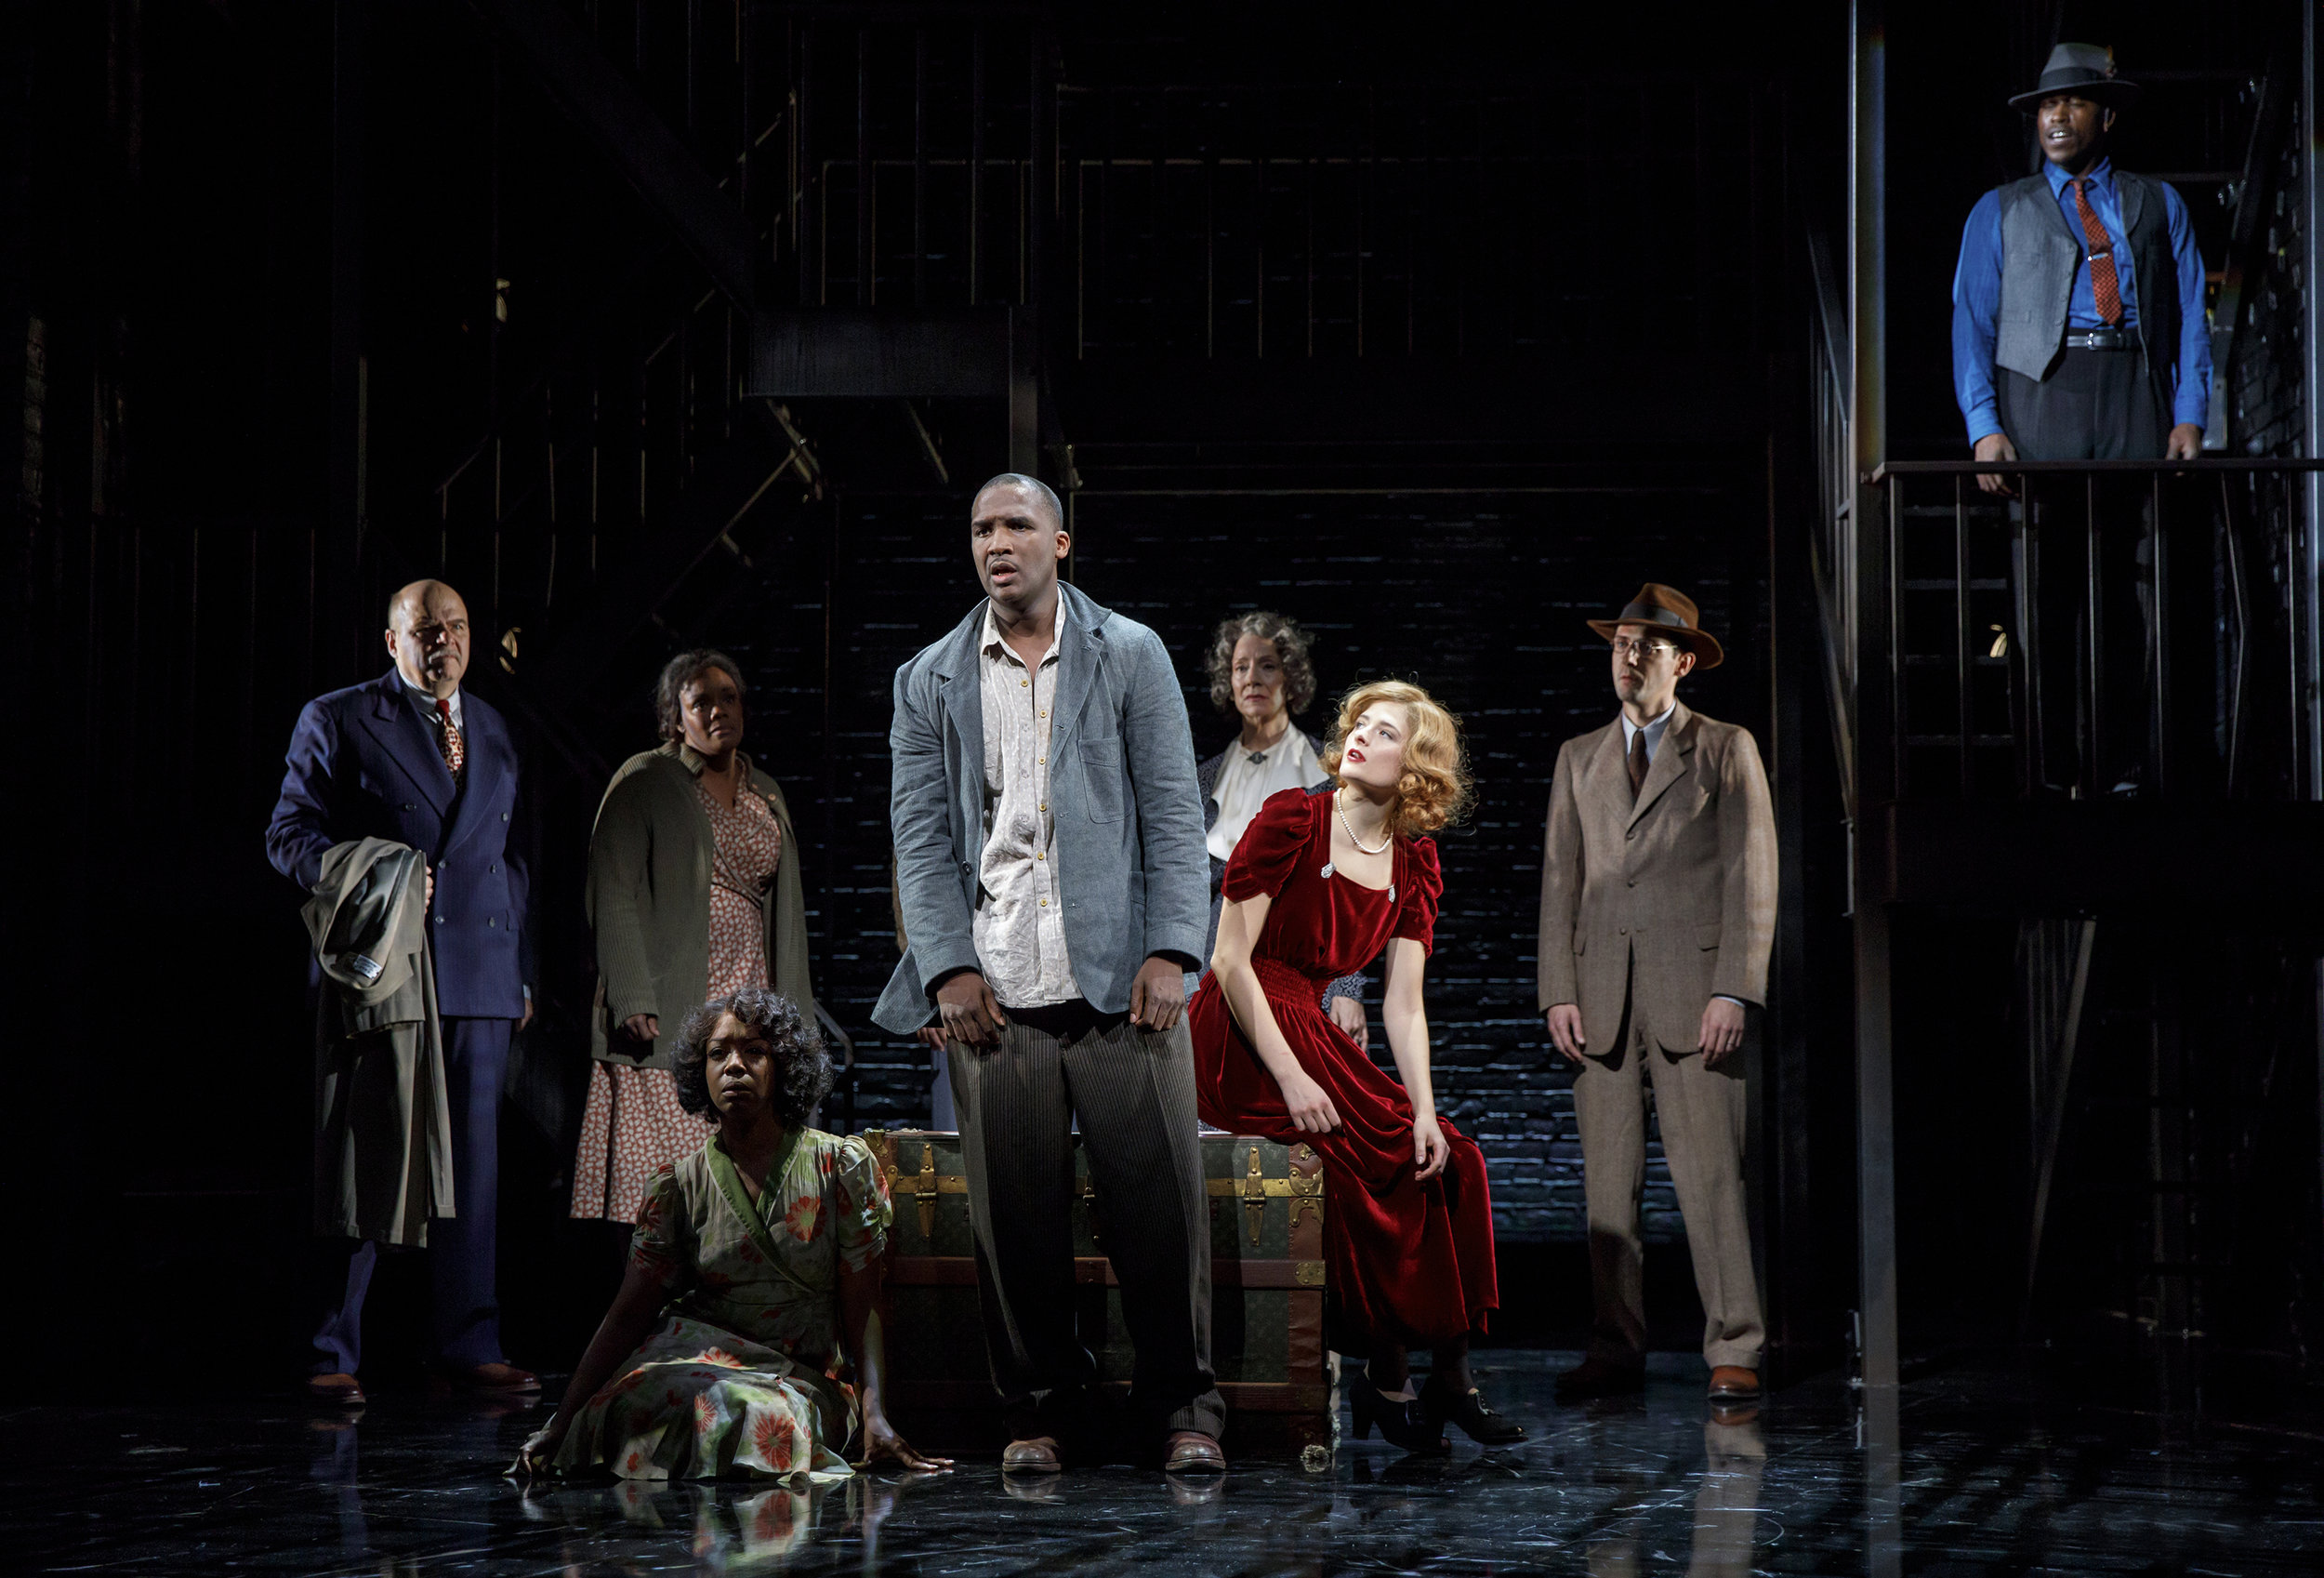 The cast of Native Son, left to right: Michael Pemberton, Rosalyn Coleman, Jessica Frances Dukes, Jerod Haynes, Carmen Roman, Louisa Jacobson, Joby Earle, Jason Bowen